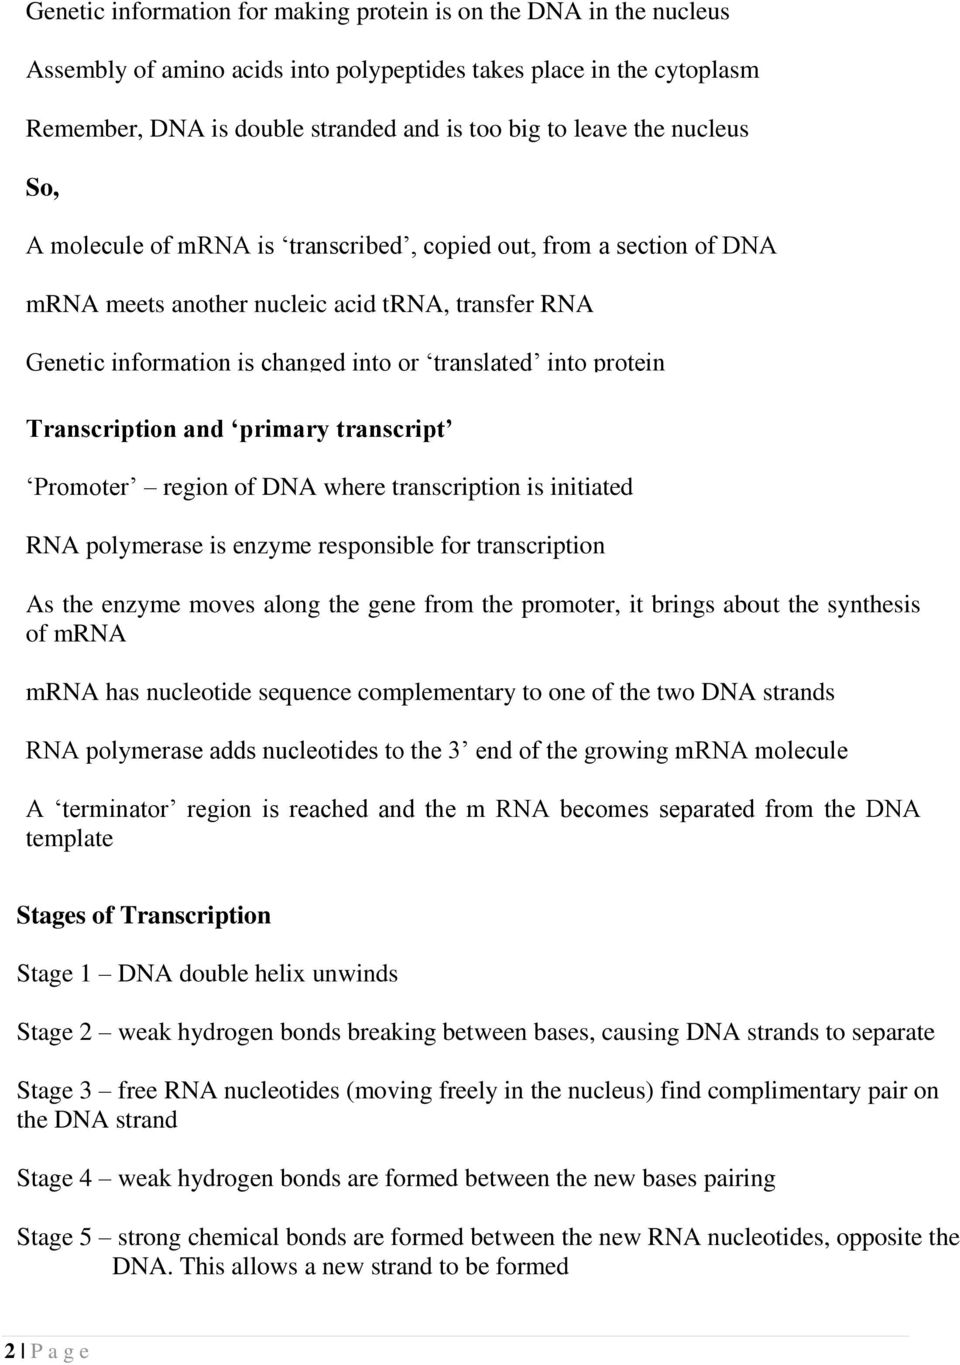 Transcription and primary transcript Promoter region of DNA where transcription is initiated RNA polymerase is enzyme responsible for transcription As the enzyme moves along the gene from the